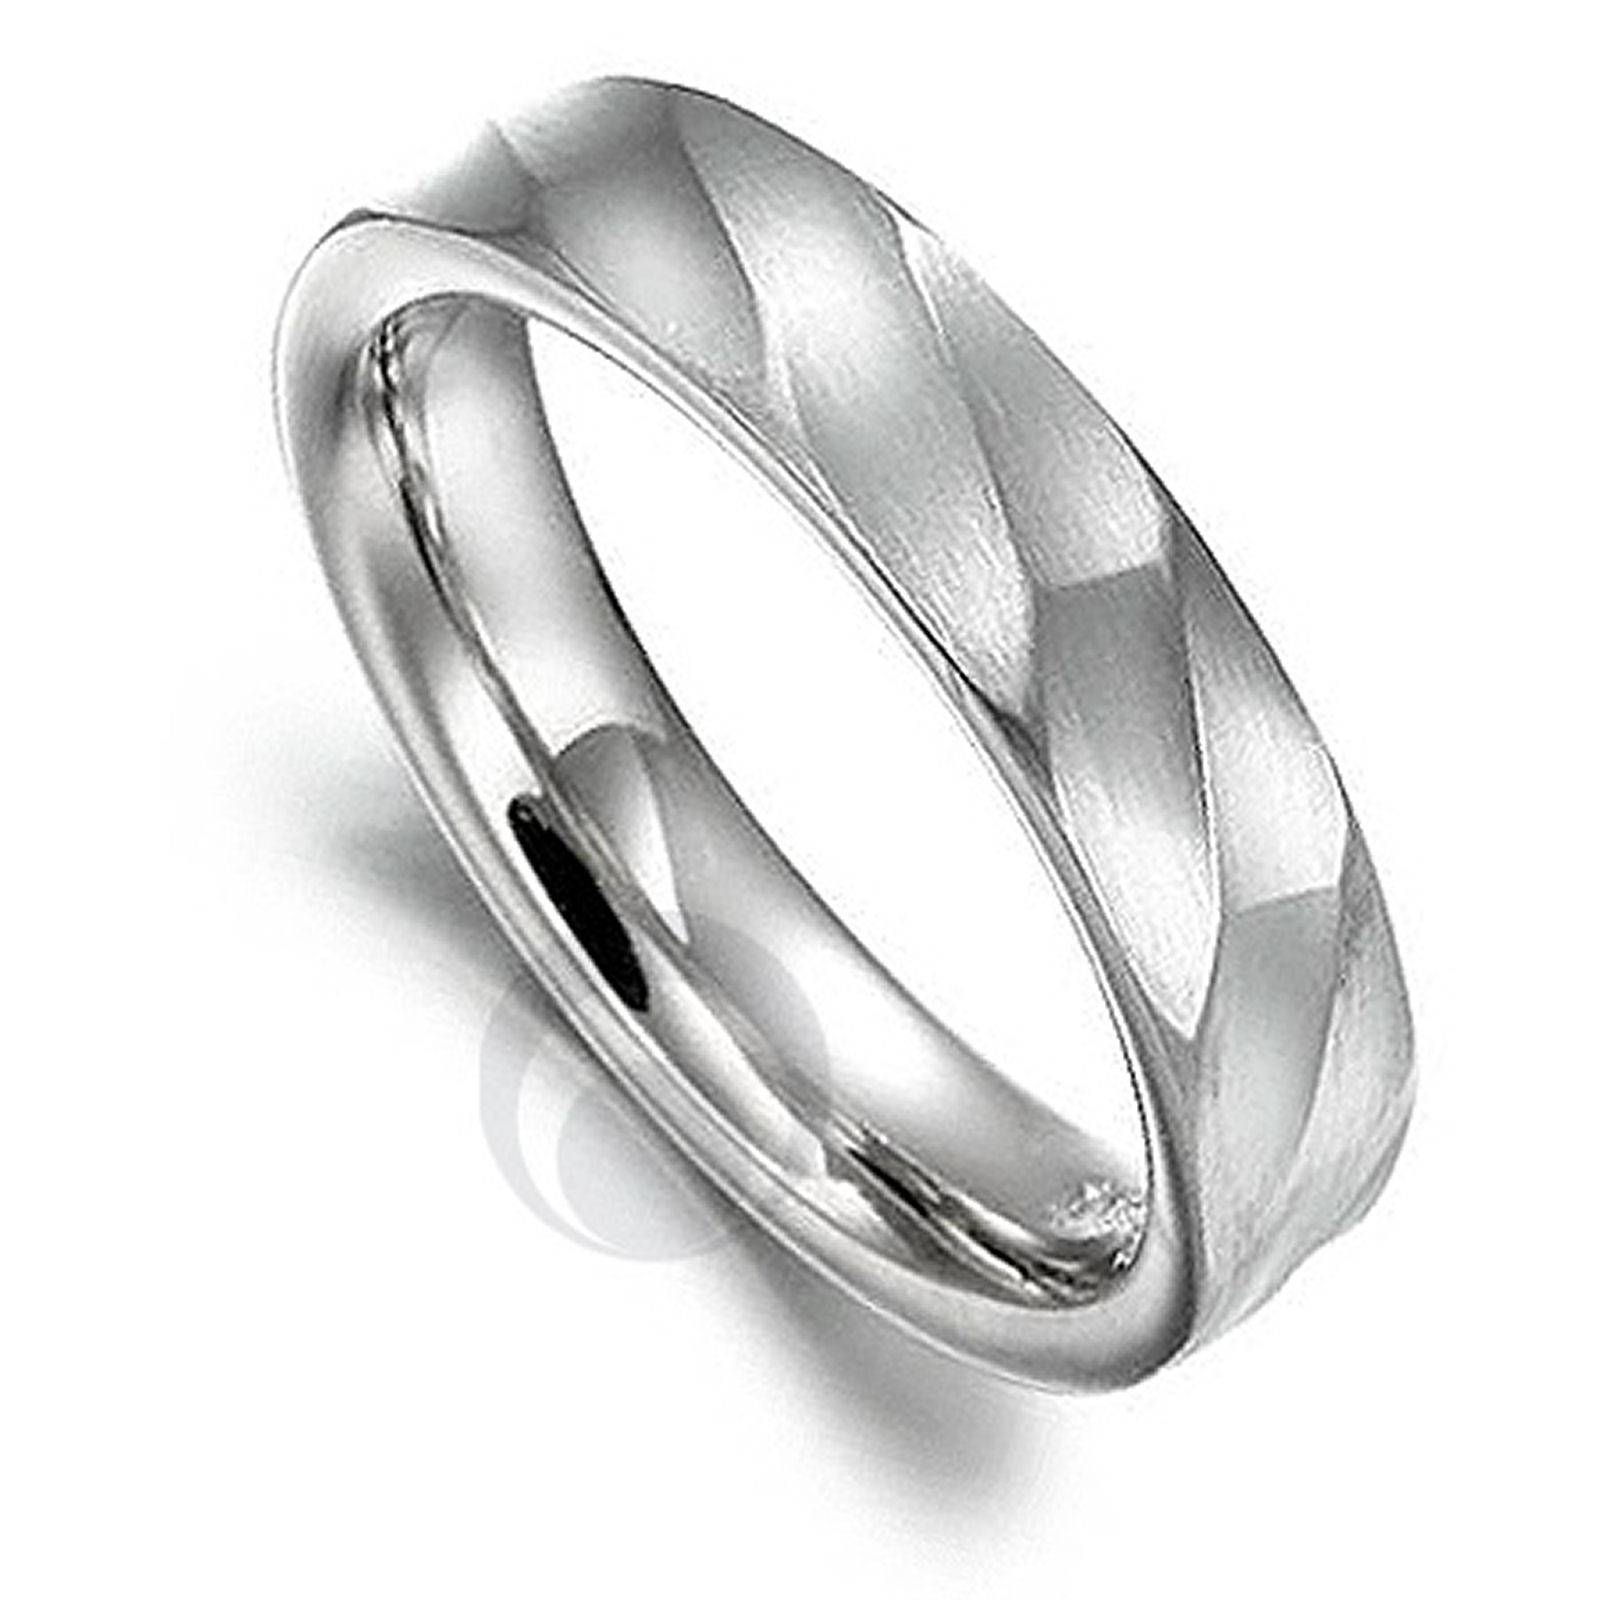 Jewelry : Mens Platinum Wedding Bands Amazon Men's Wedding Bands With Regard To Platinum Male Wedding Rings (View 8 of 15)